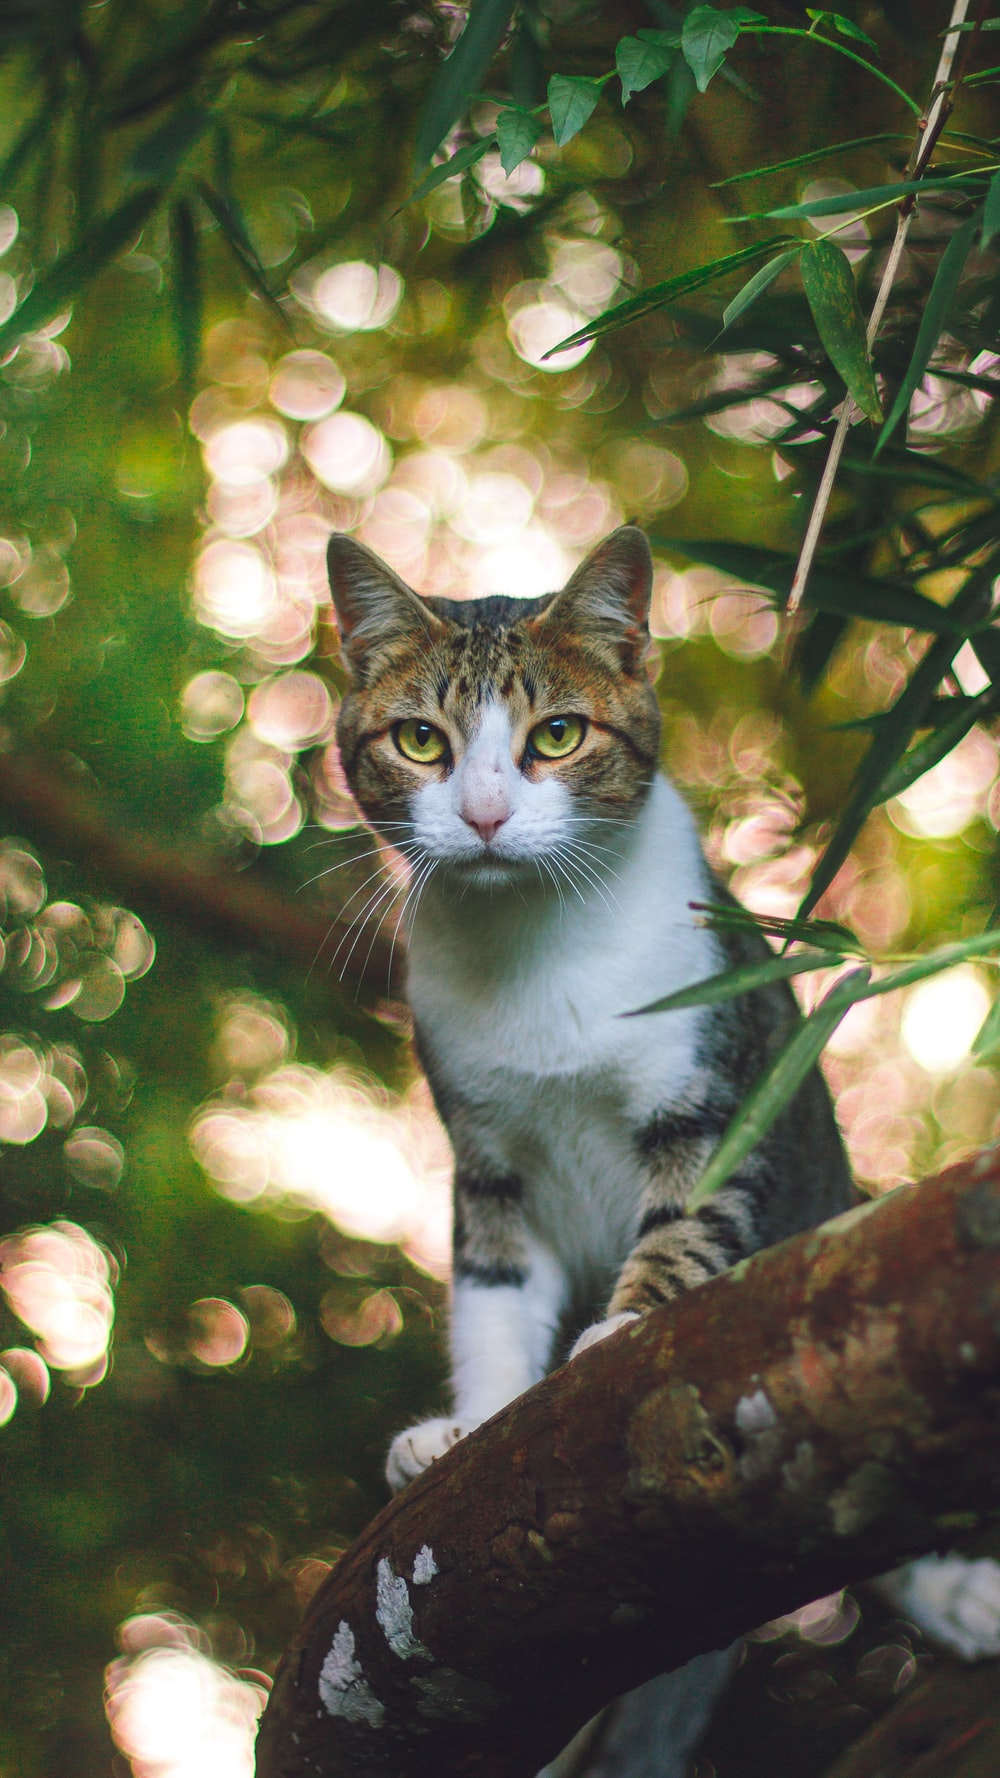 brown and black tabby cat standing on tree branch